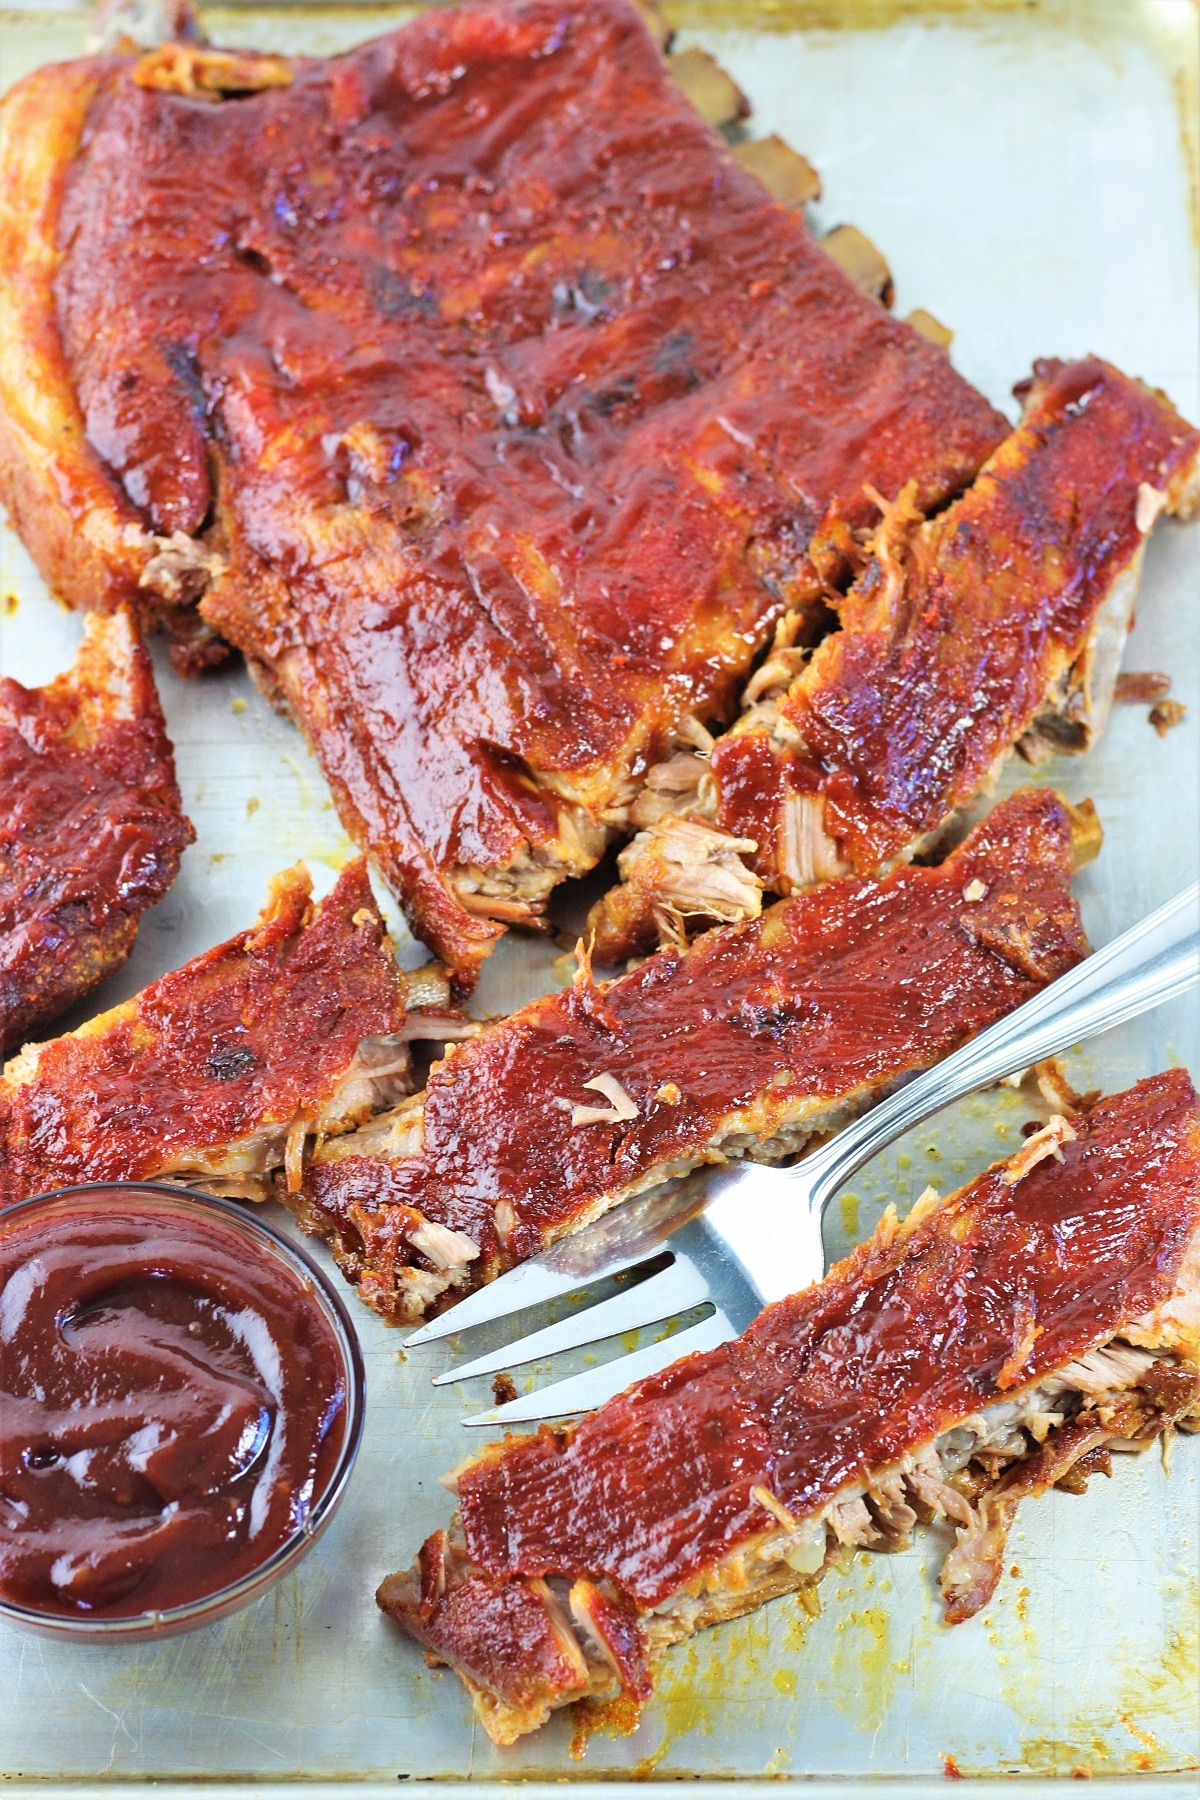 bbq pork ribs on a serving tray with a serving fork and a small bowl of barbecue sauce